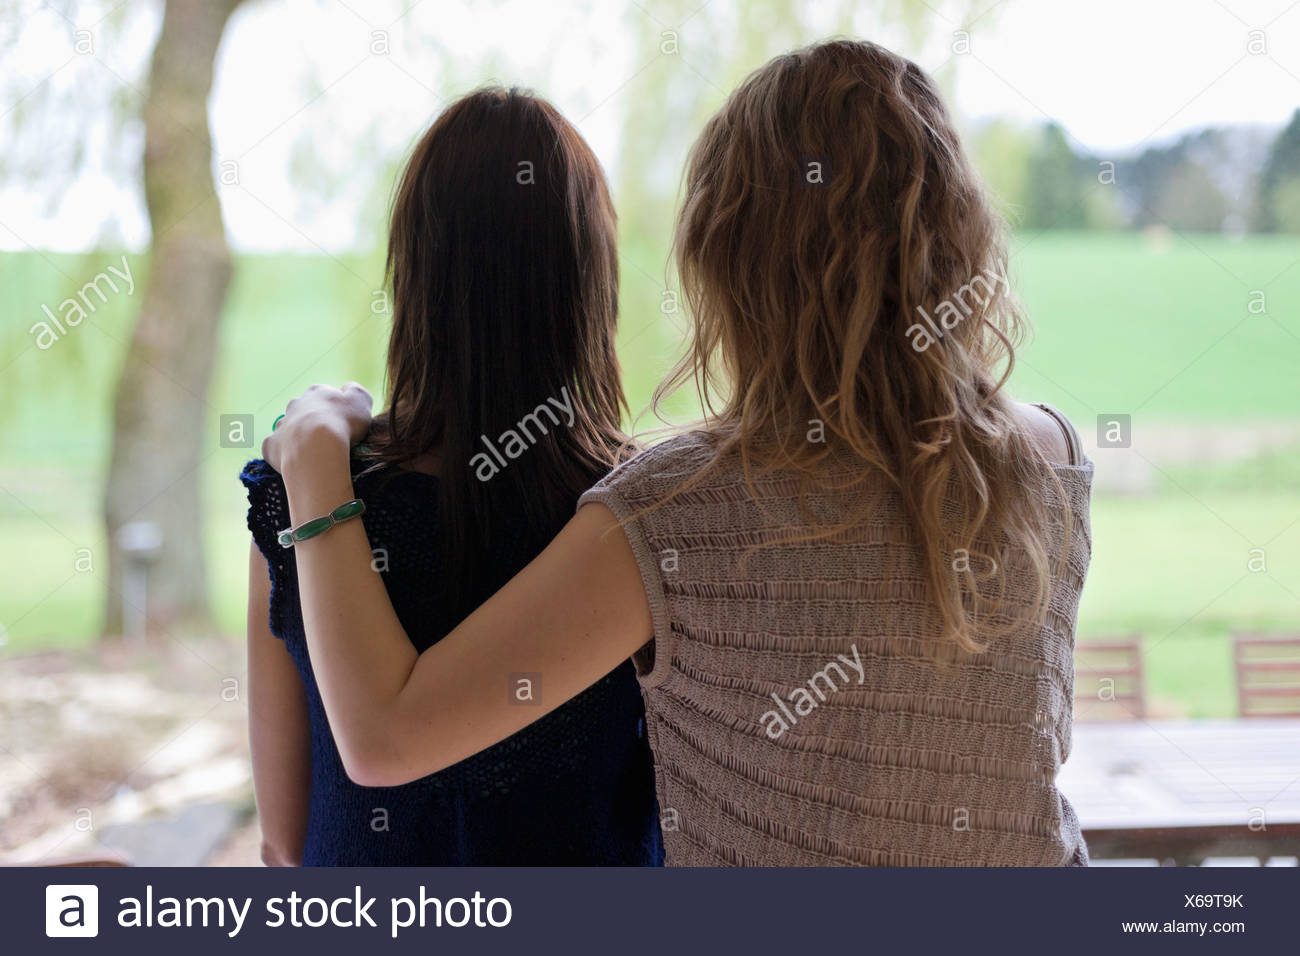 Rear view of a woman with her mother - Stock Image